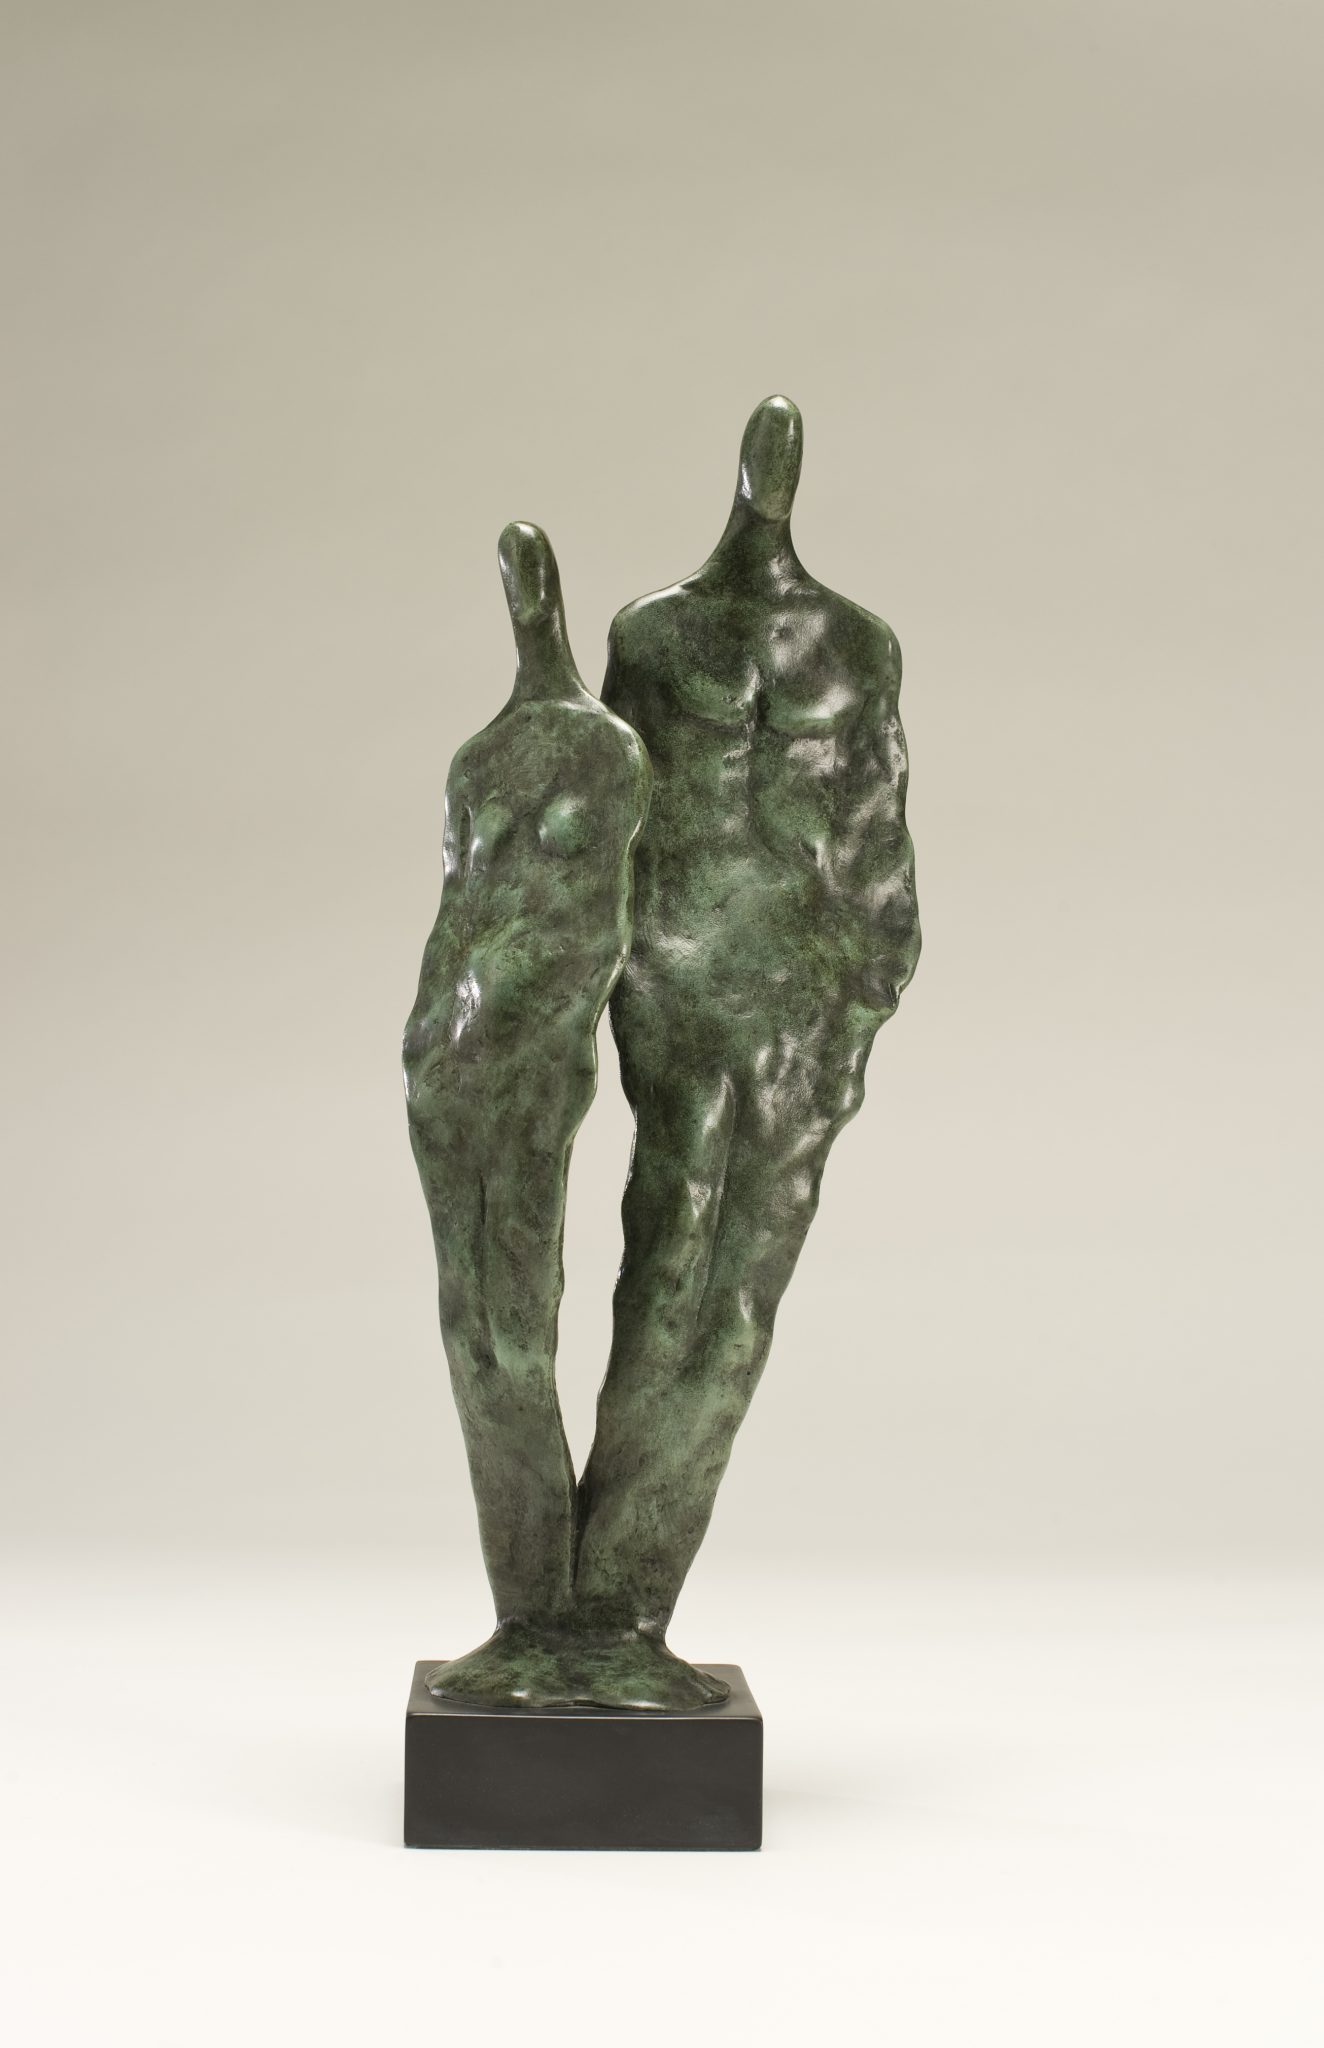 Man and woman sculpture together as one